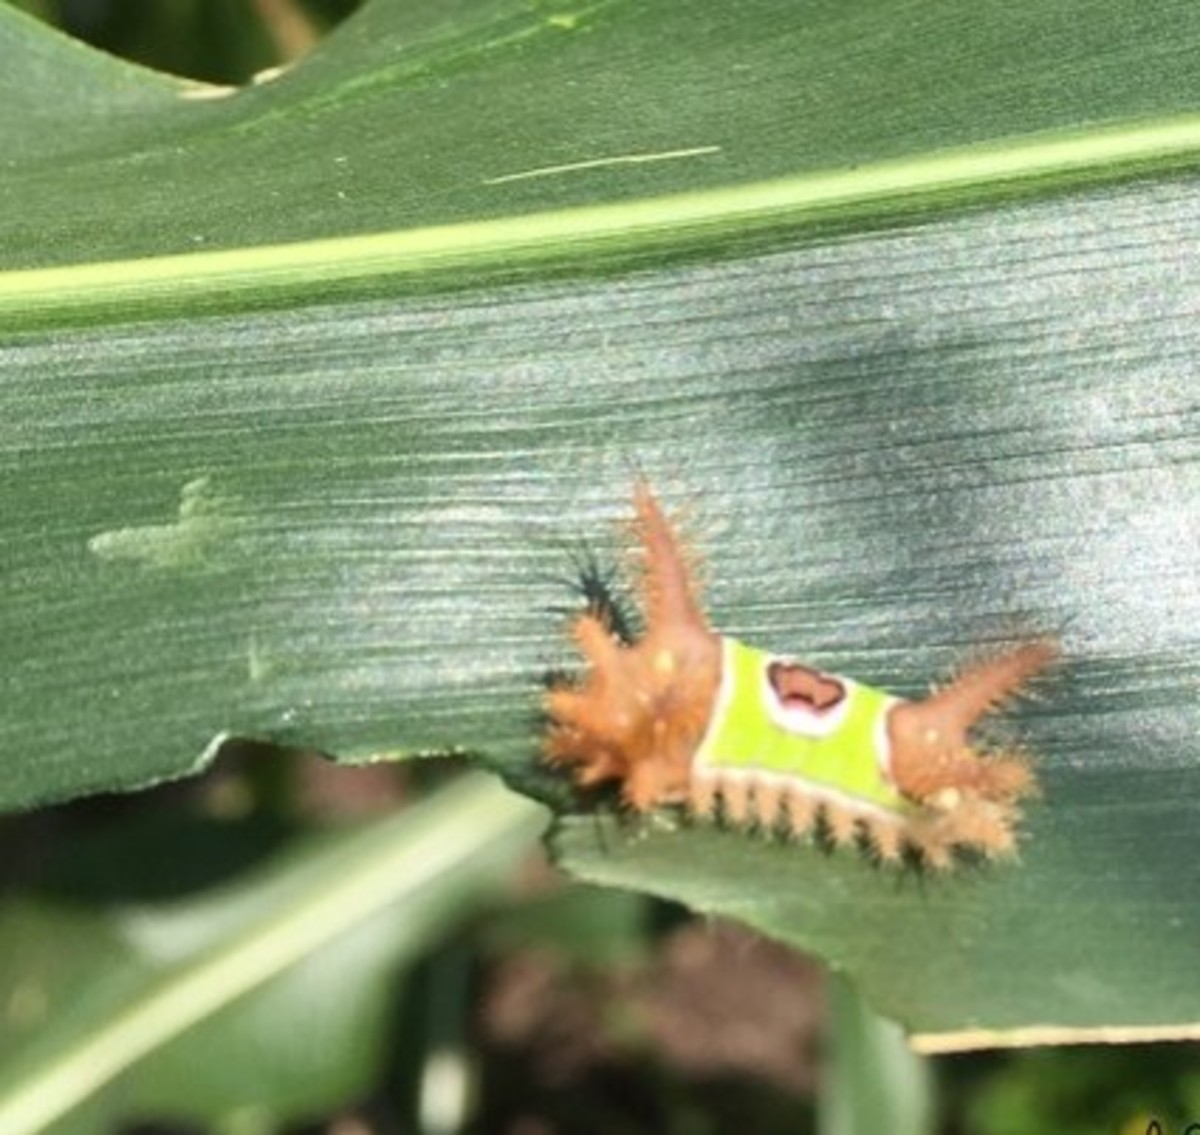 My own photo of a Saddleback Caterpillar that stung me.